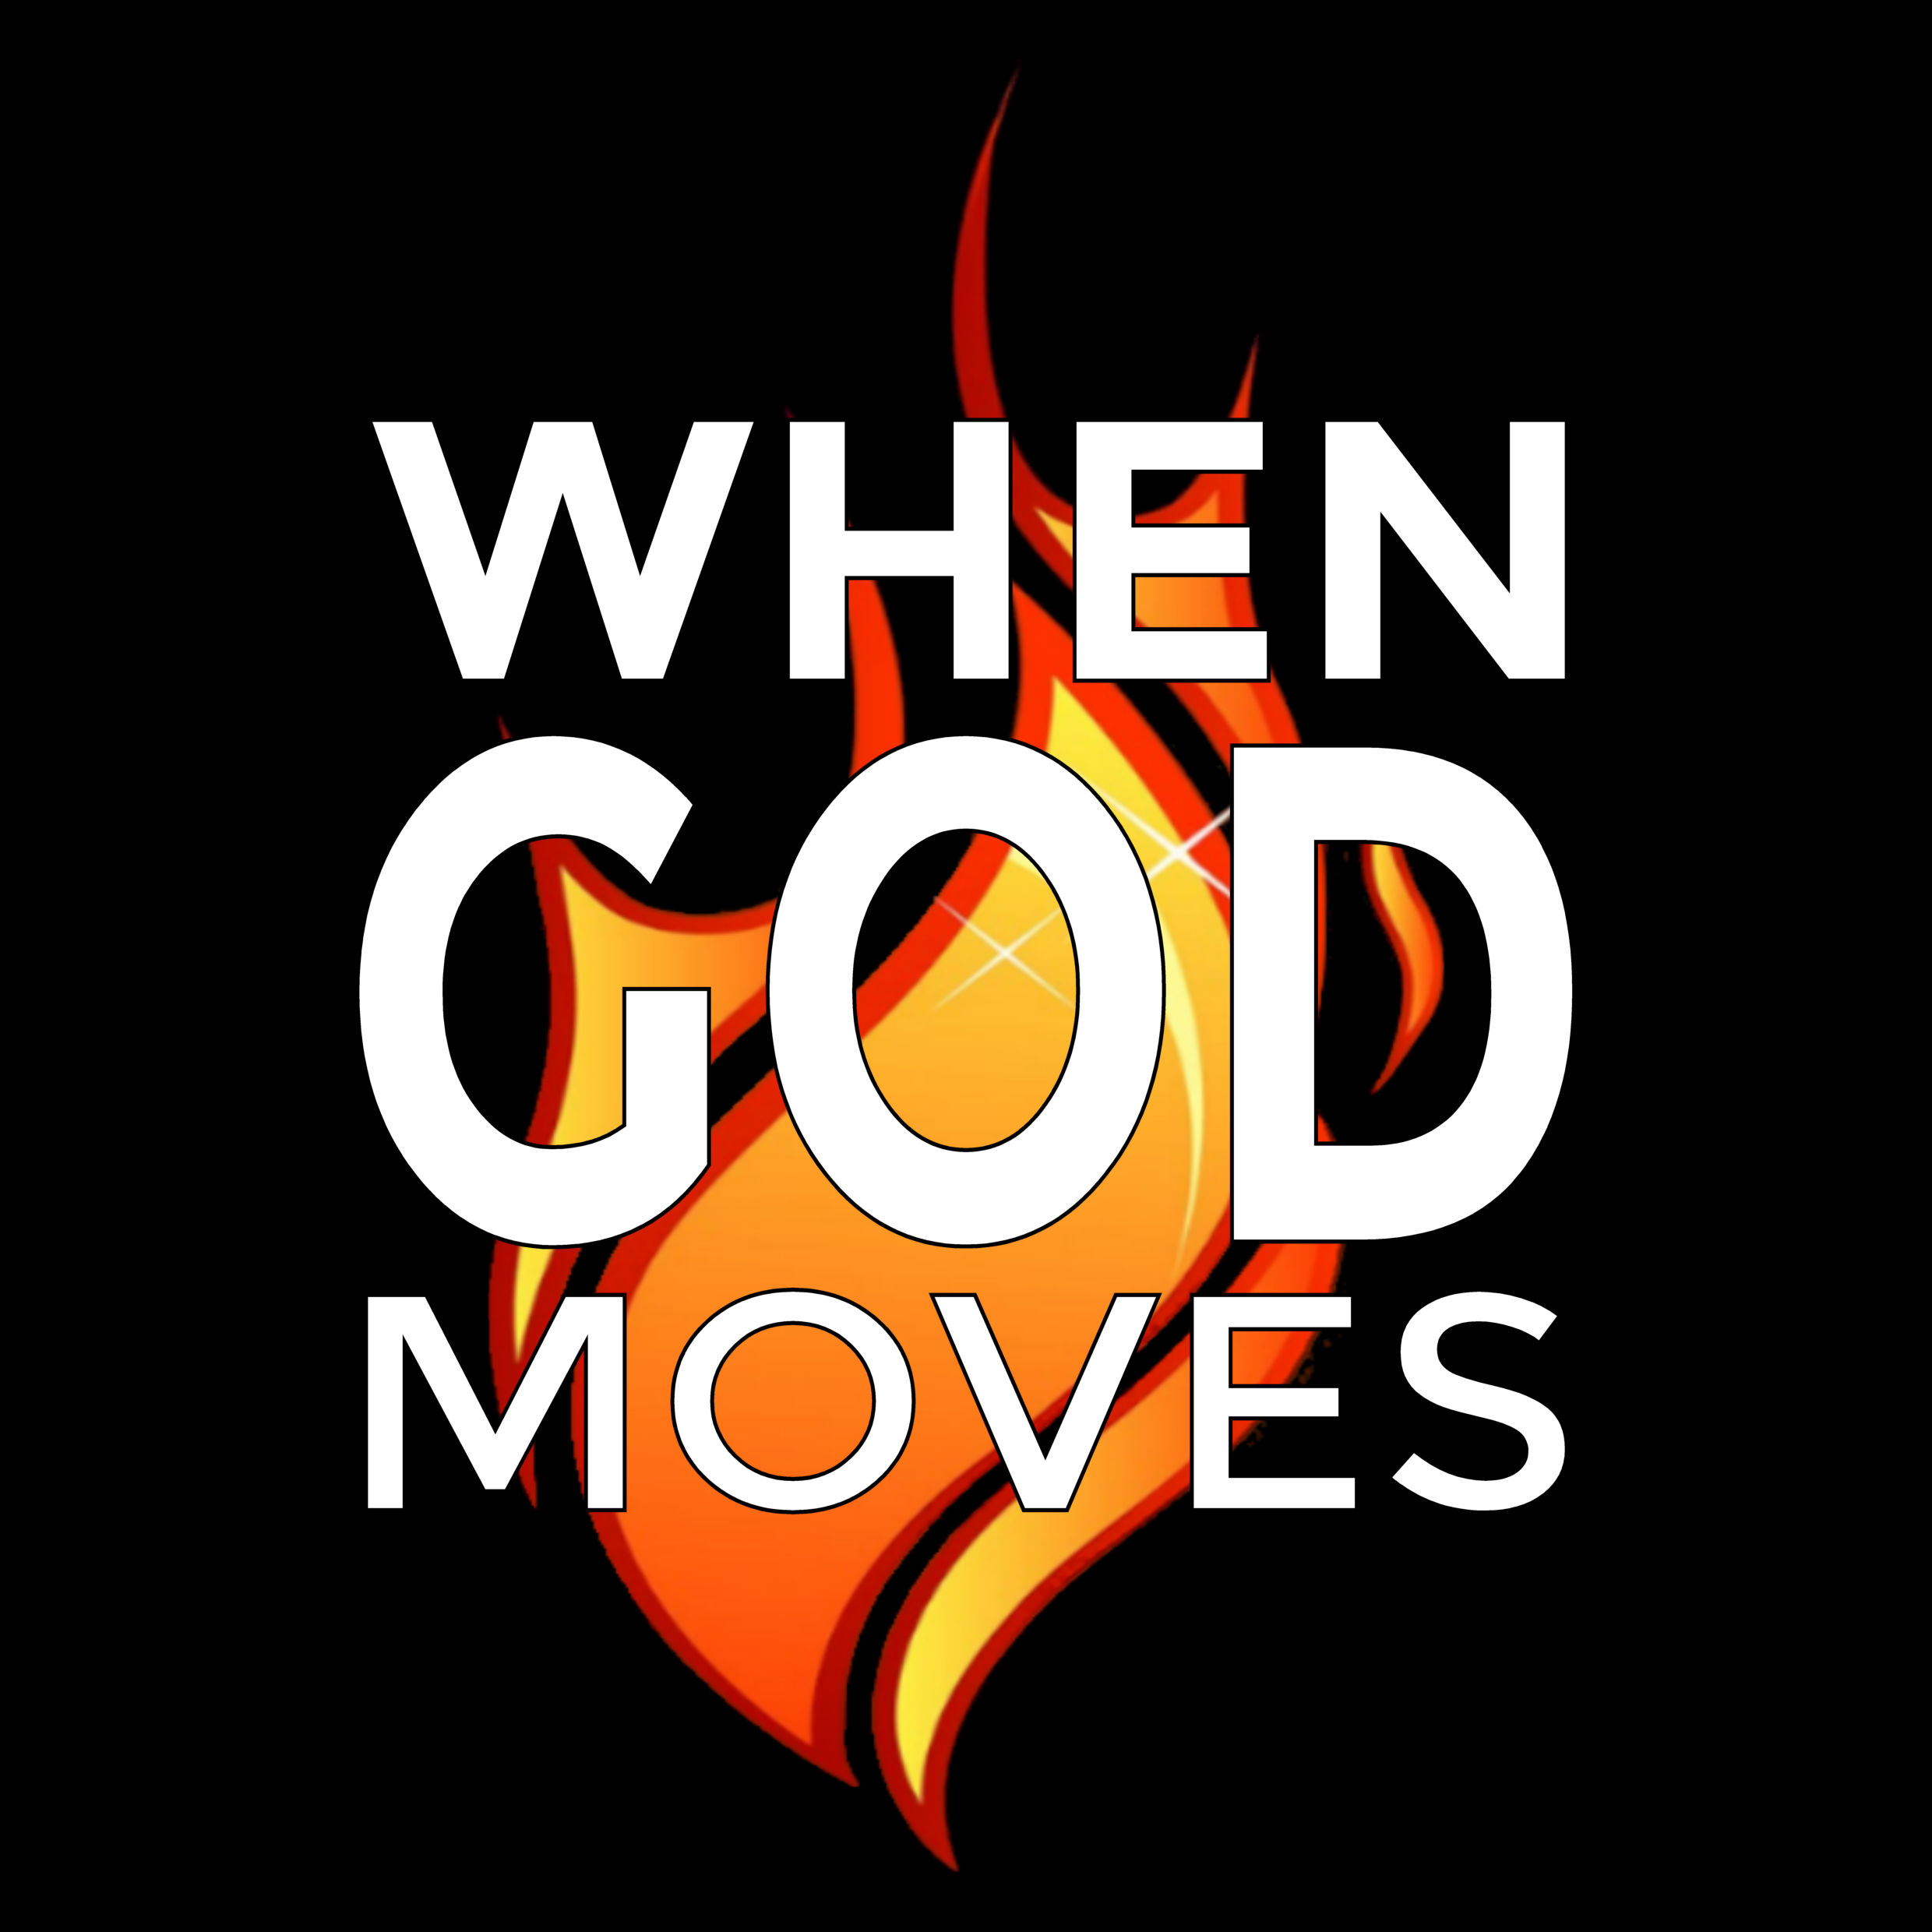 When God Moves